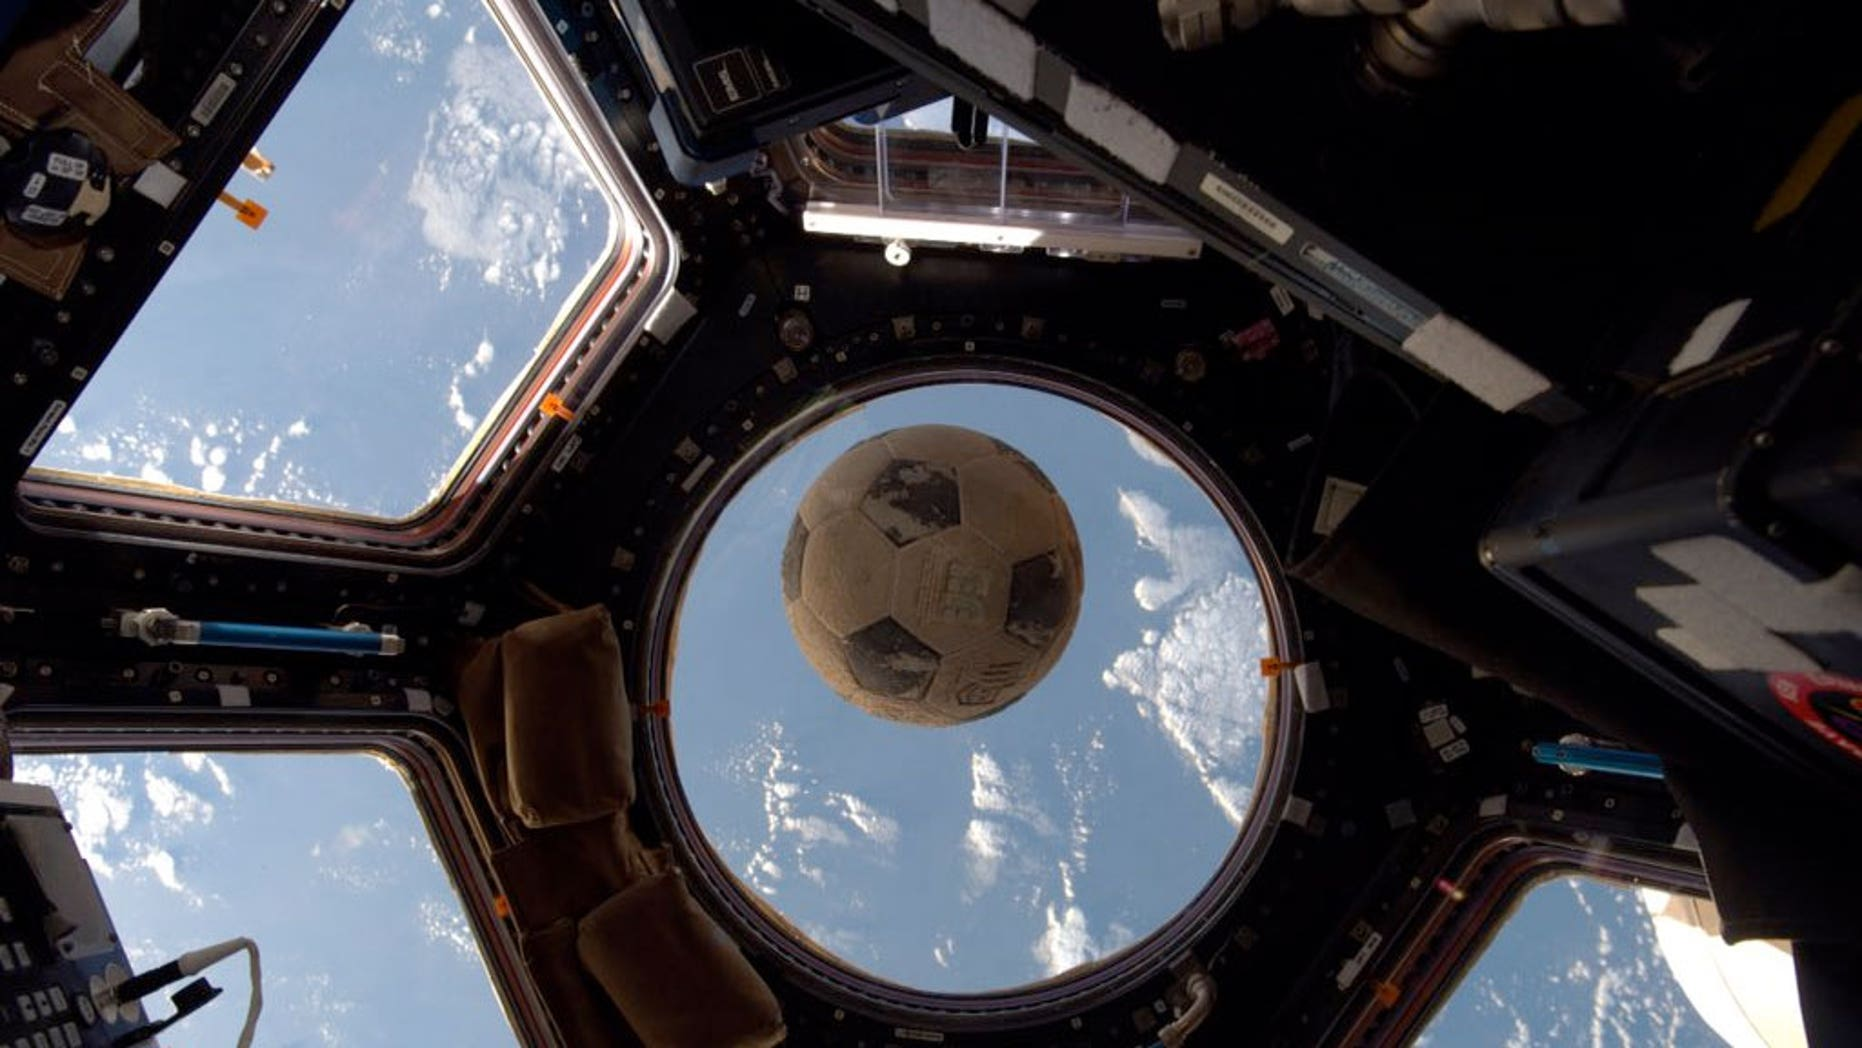 A soccer ball flown aboard the ill-fated launch of the space shuttle Challenger floats on the International Space Station.